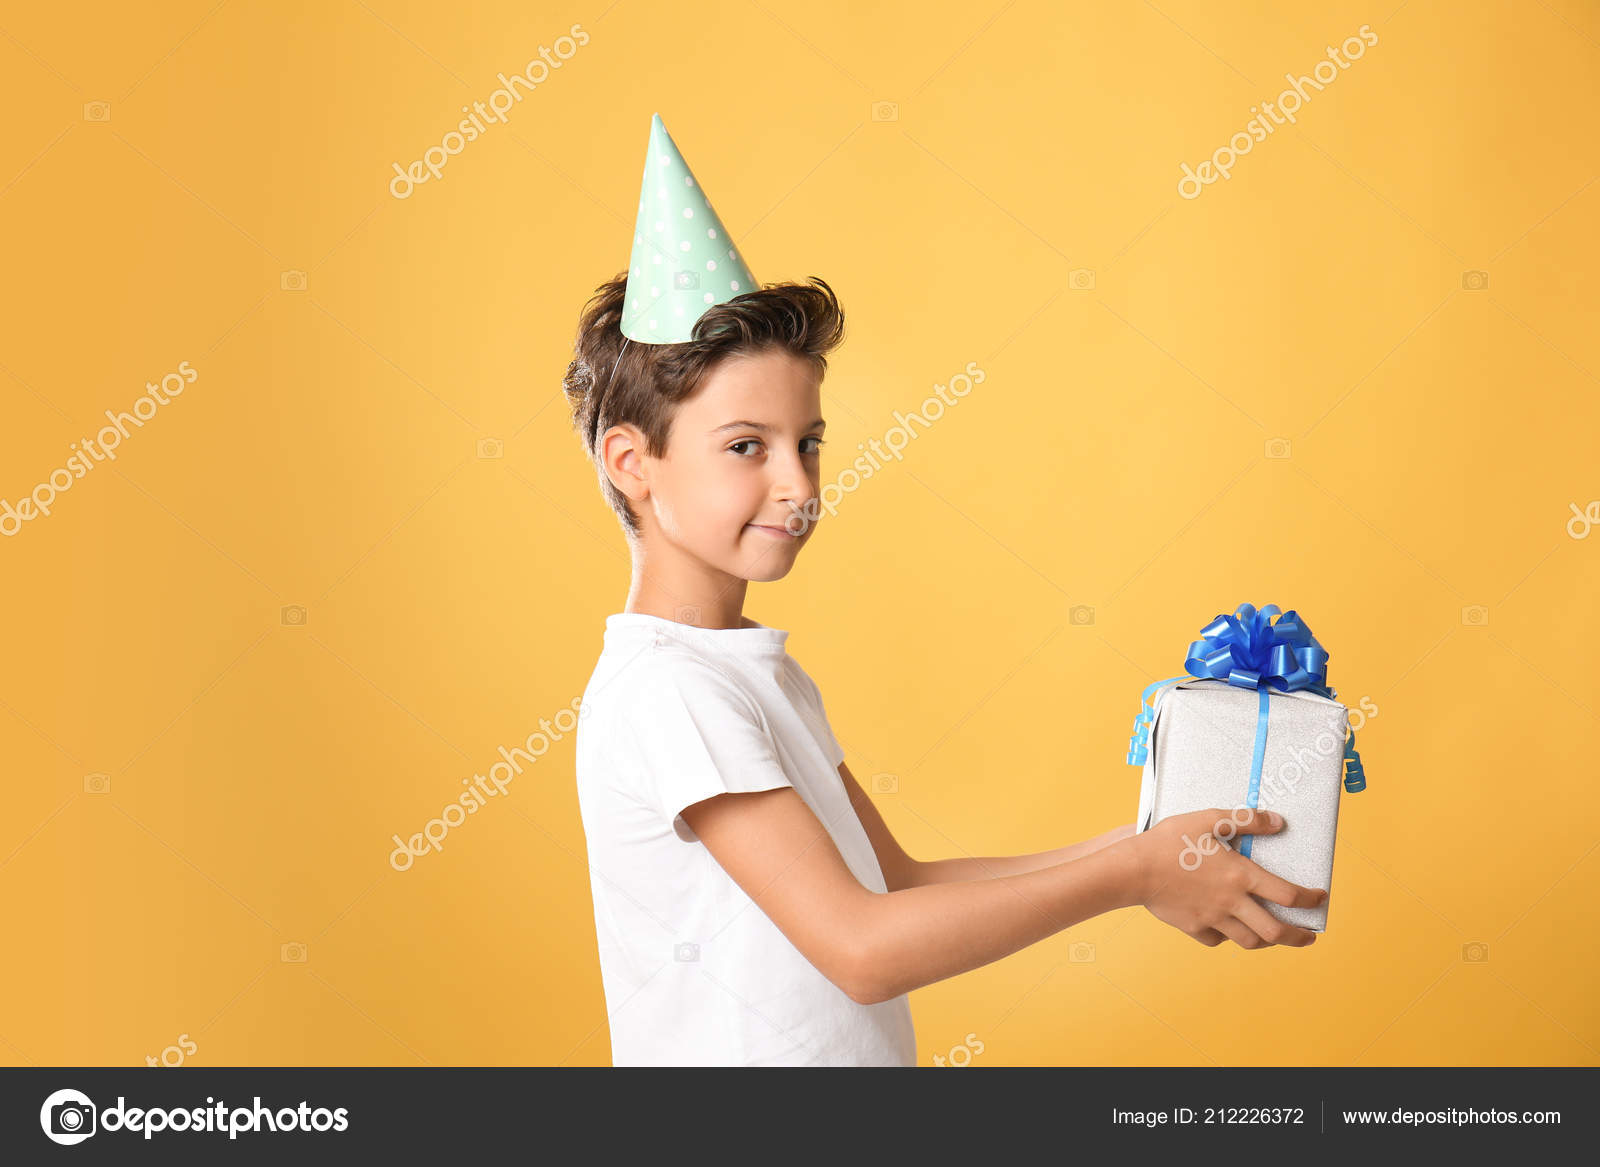 Cute Little Boy Birthday Gift Color Background Stock Image